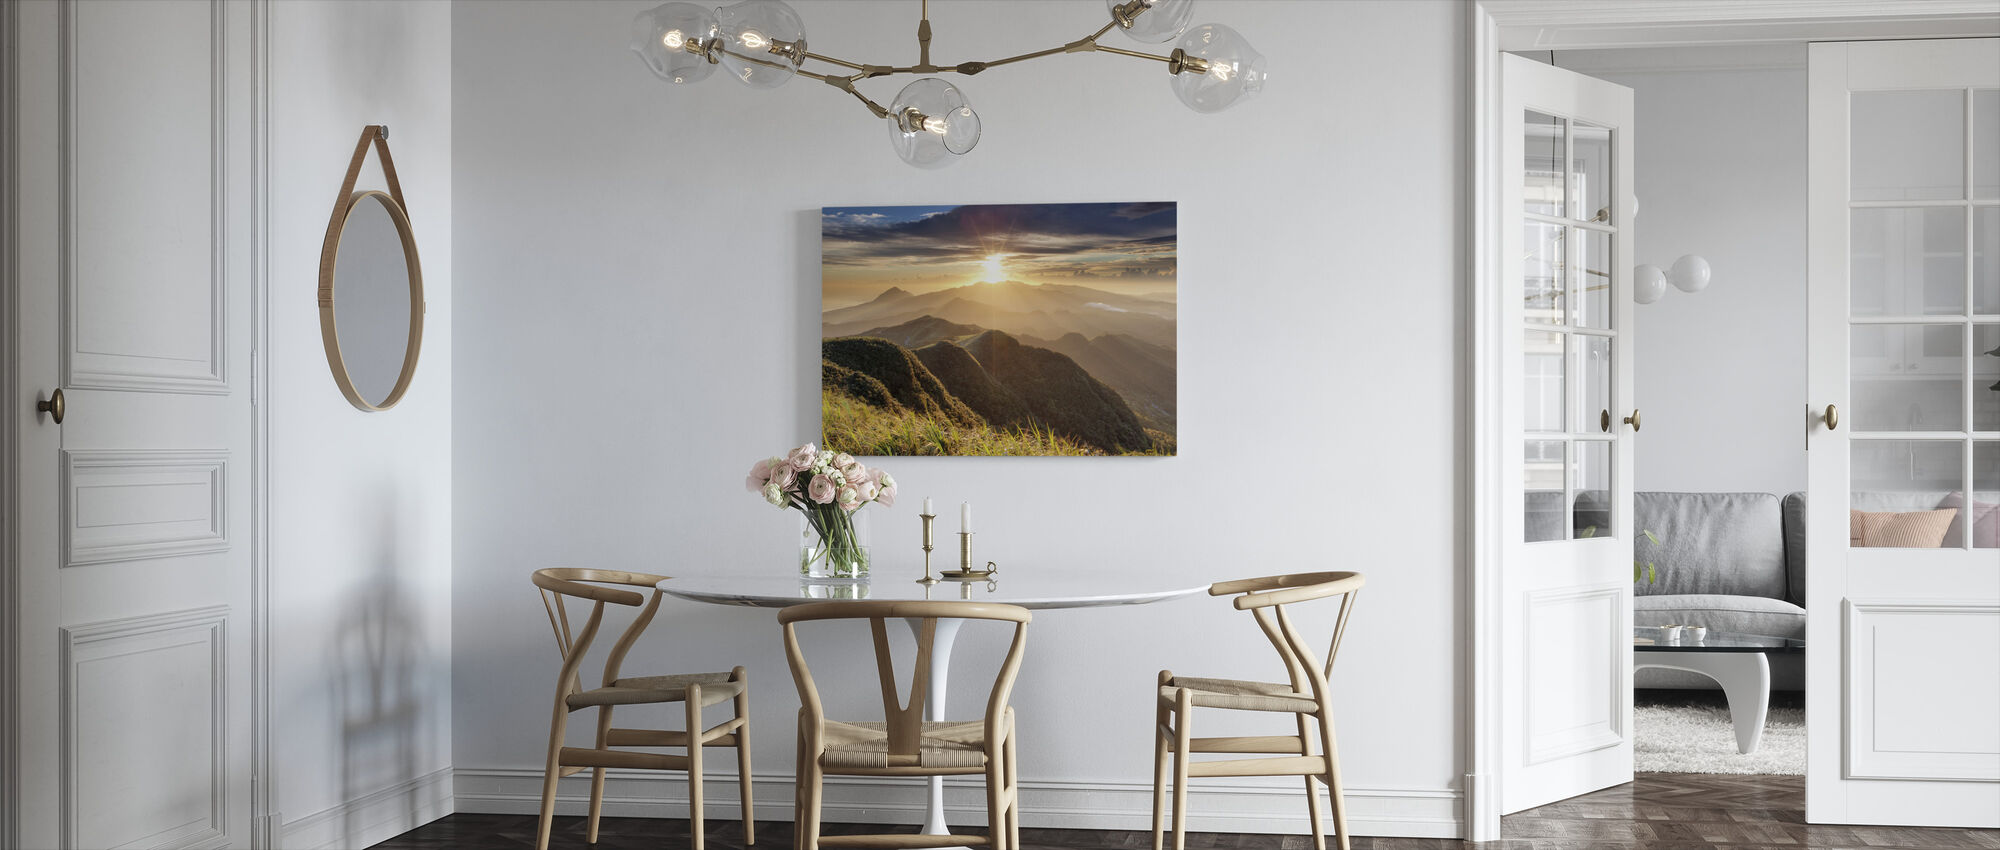 Diamanten en Roest - Canvas print - Keuken